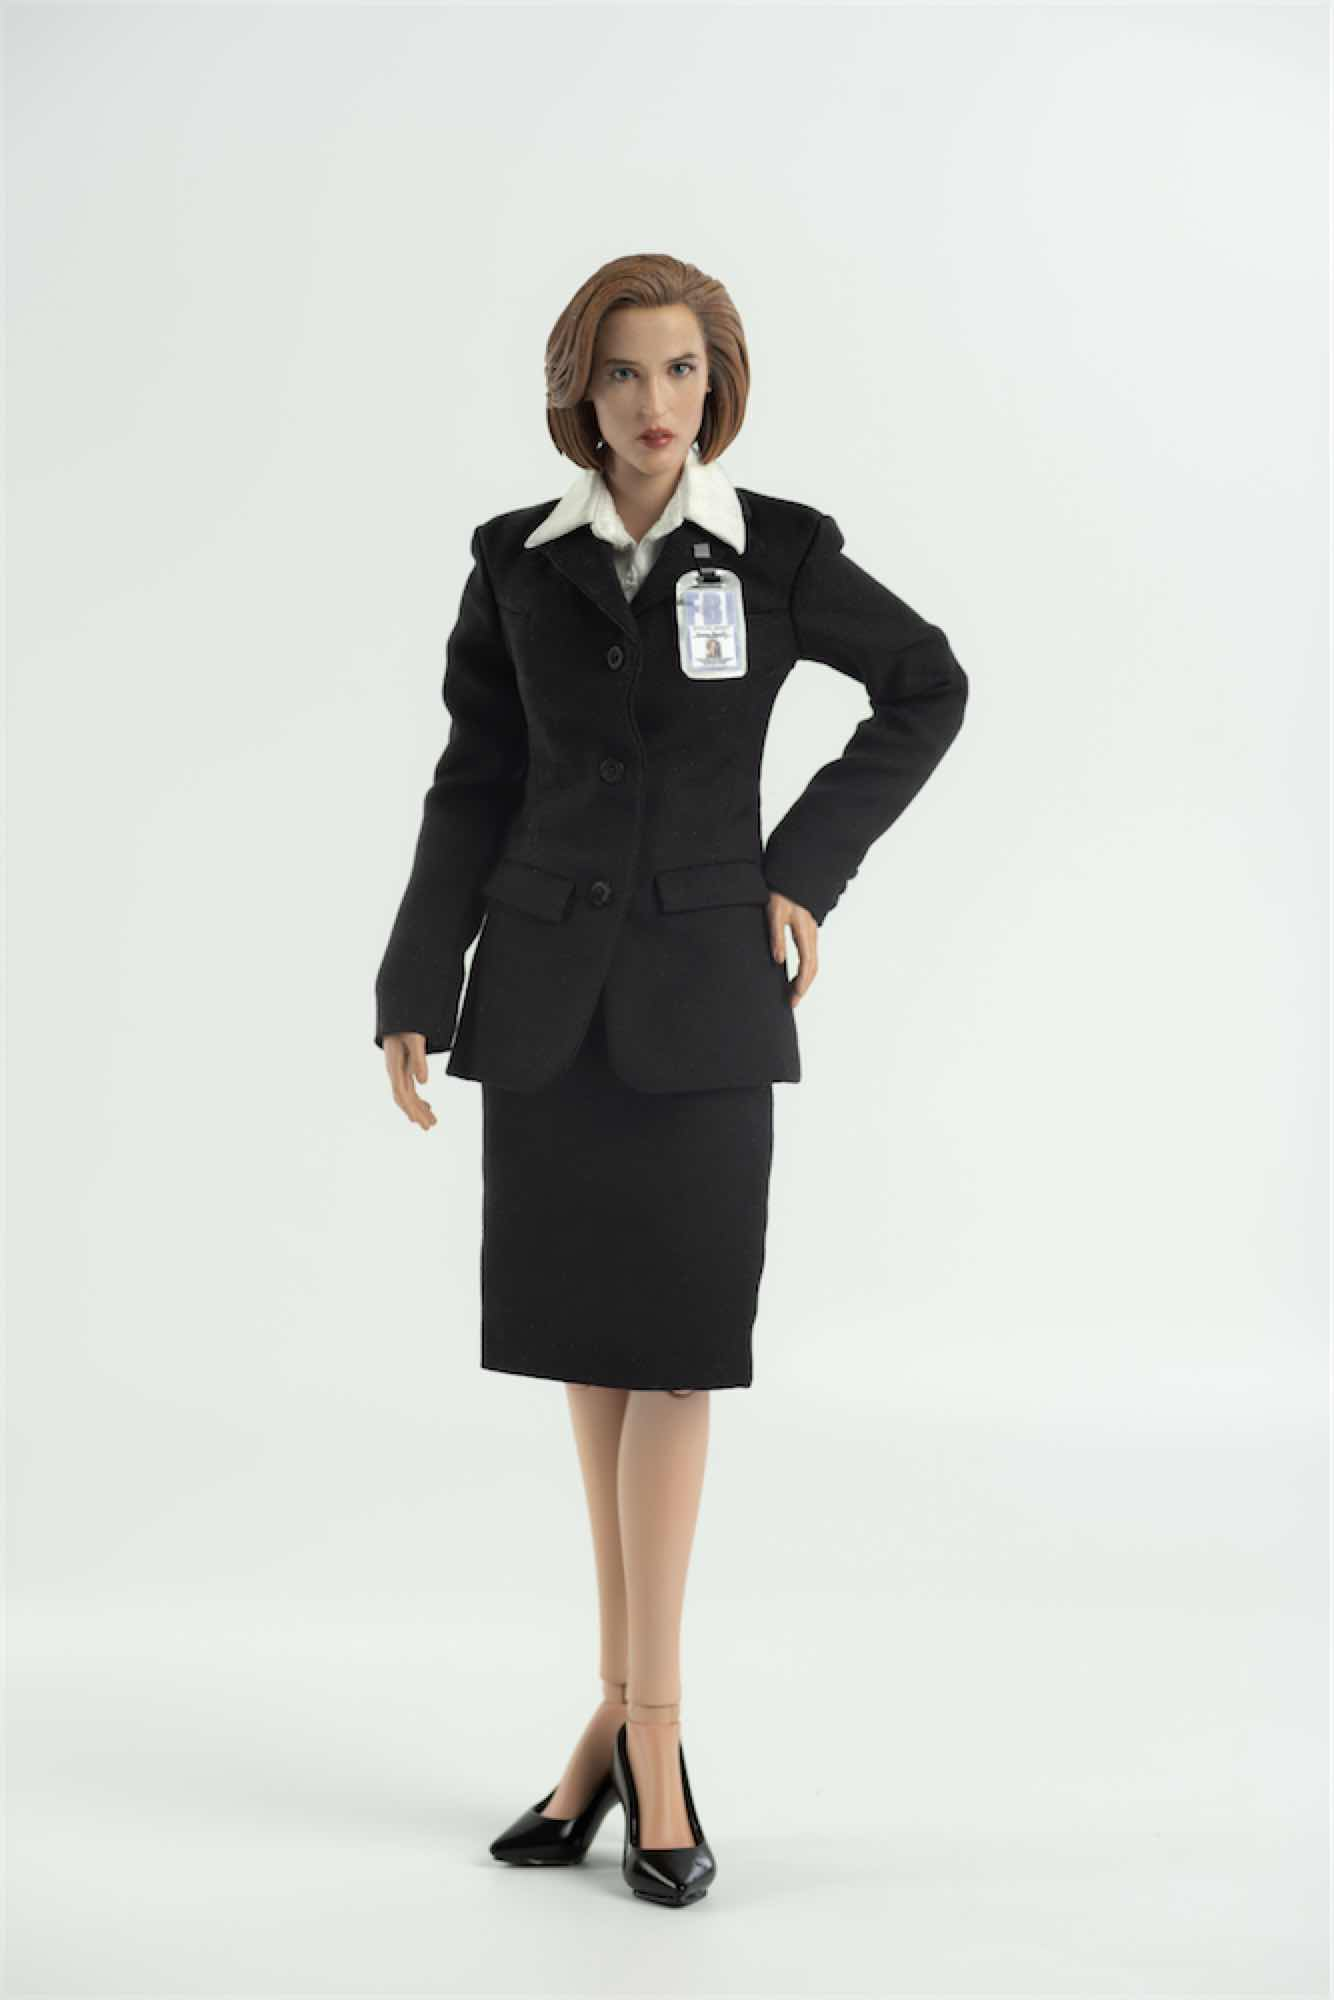 AGENTE SCULLY STANDARD VER. FIGURA 28 CM 1/6 SCALE COLLECTIBLE FIGURE THE X FILES